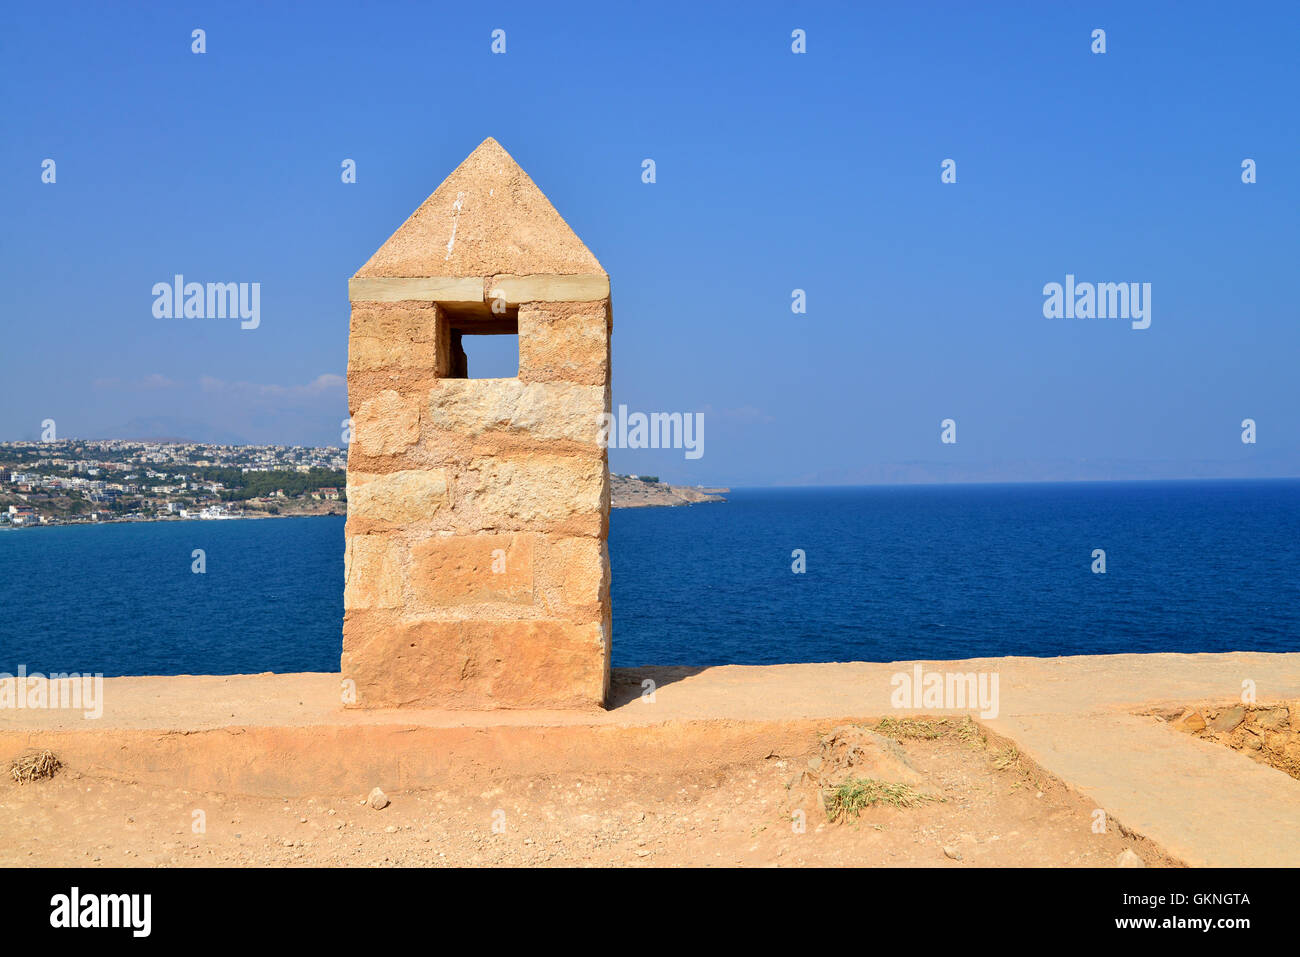 Rethymno city Greece view from Fortezza fortress landmark Stock Photo